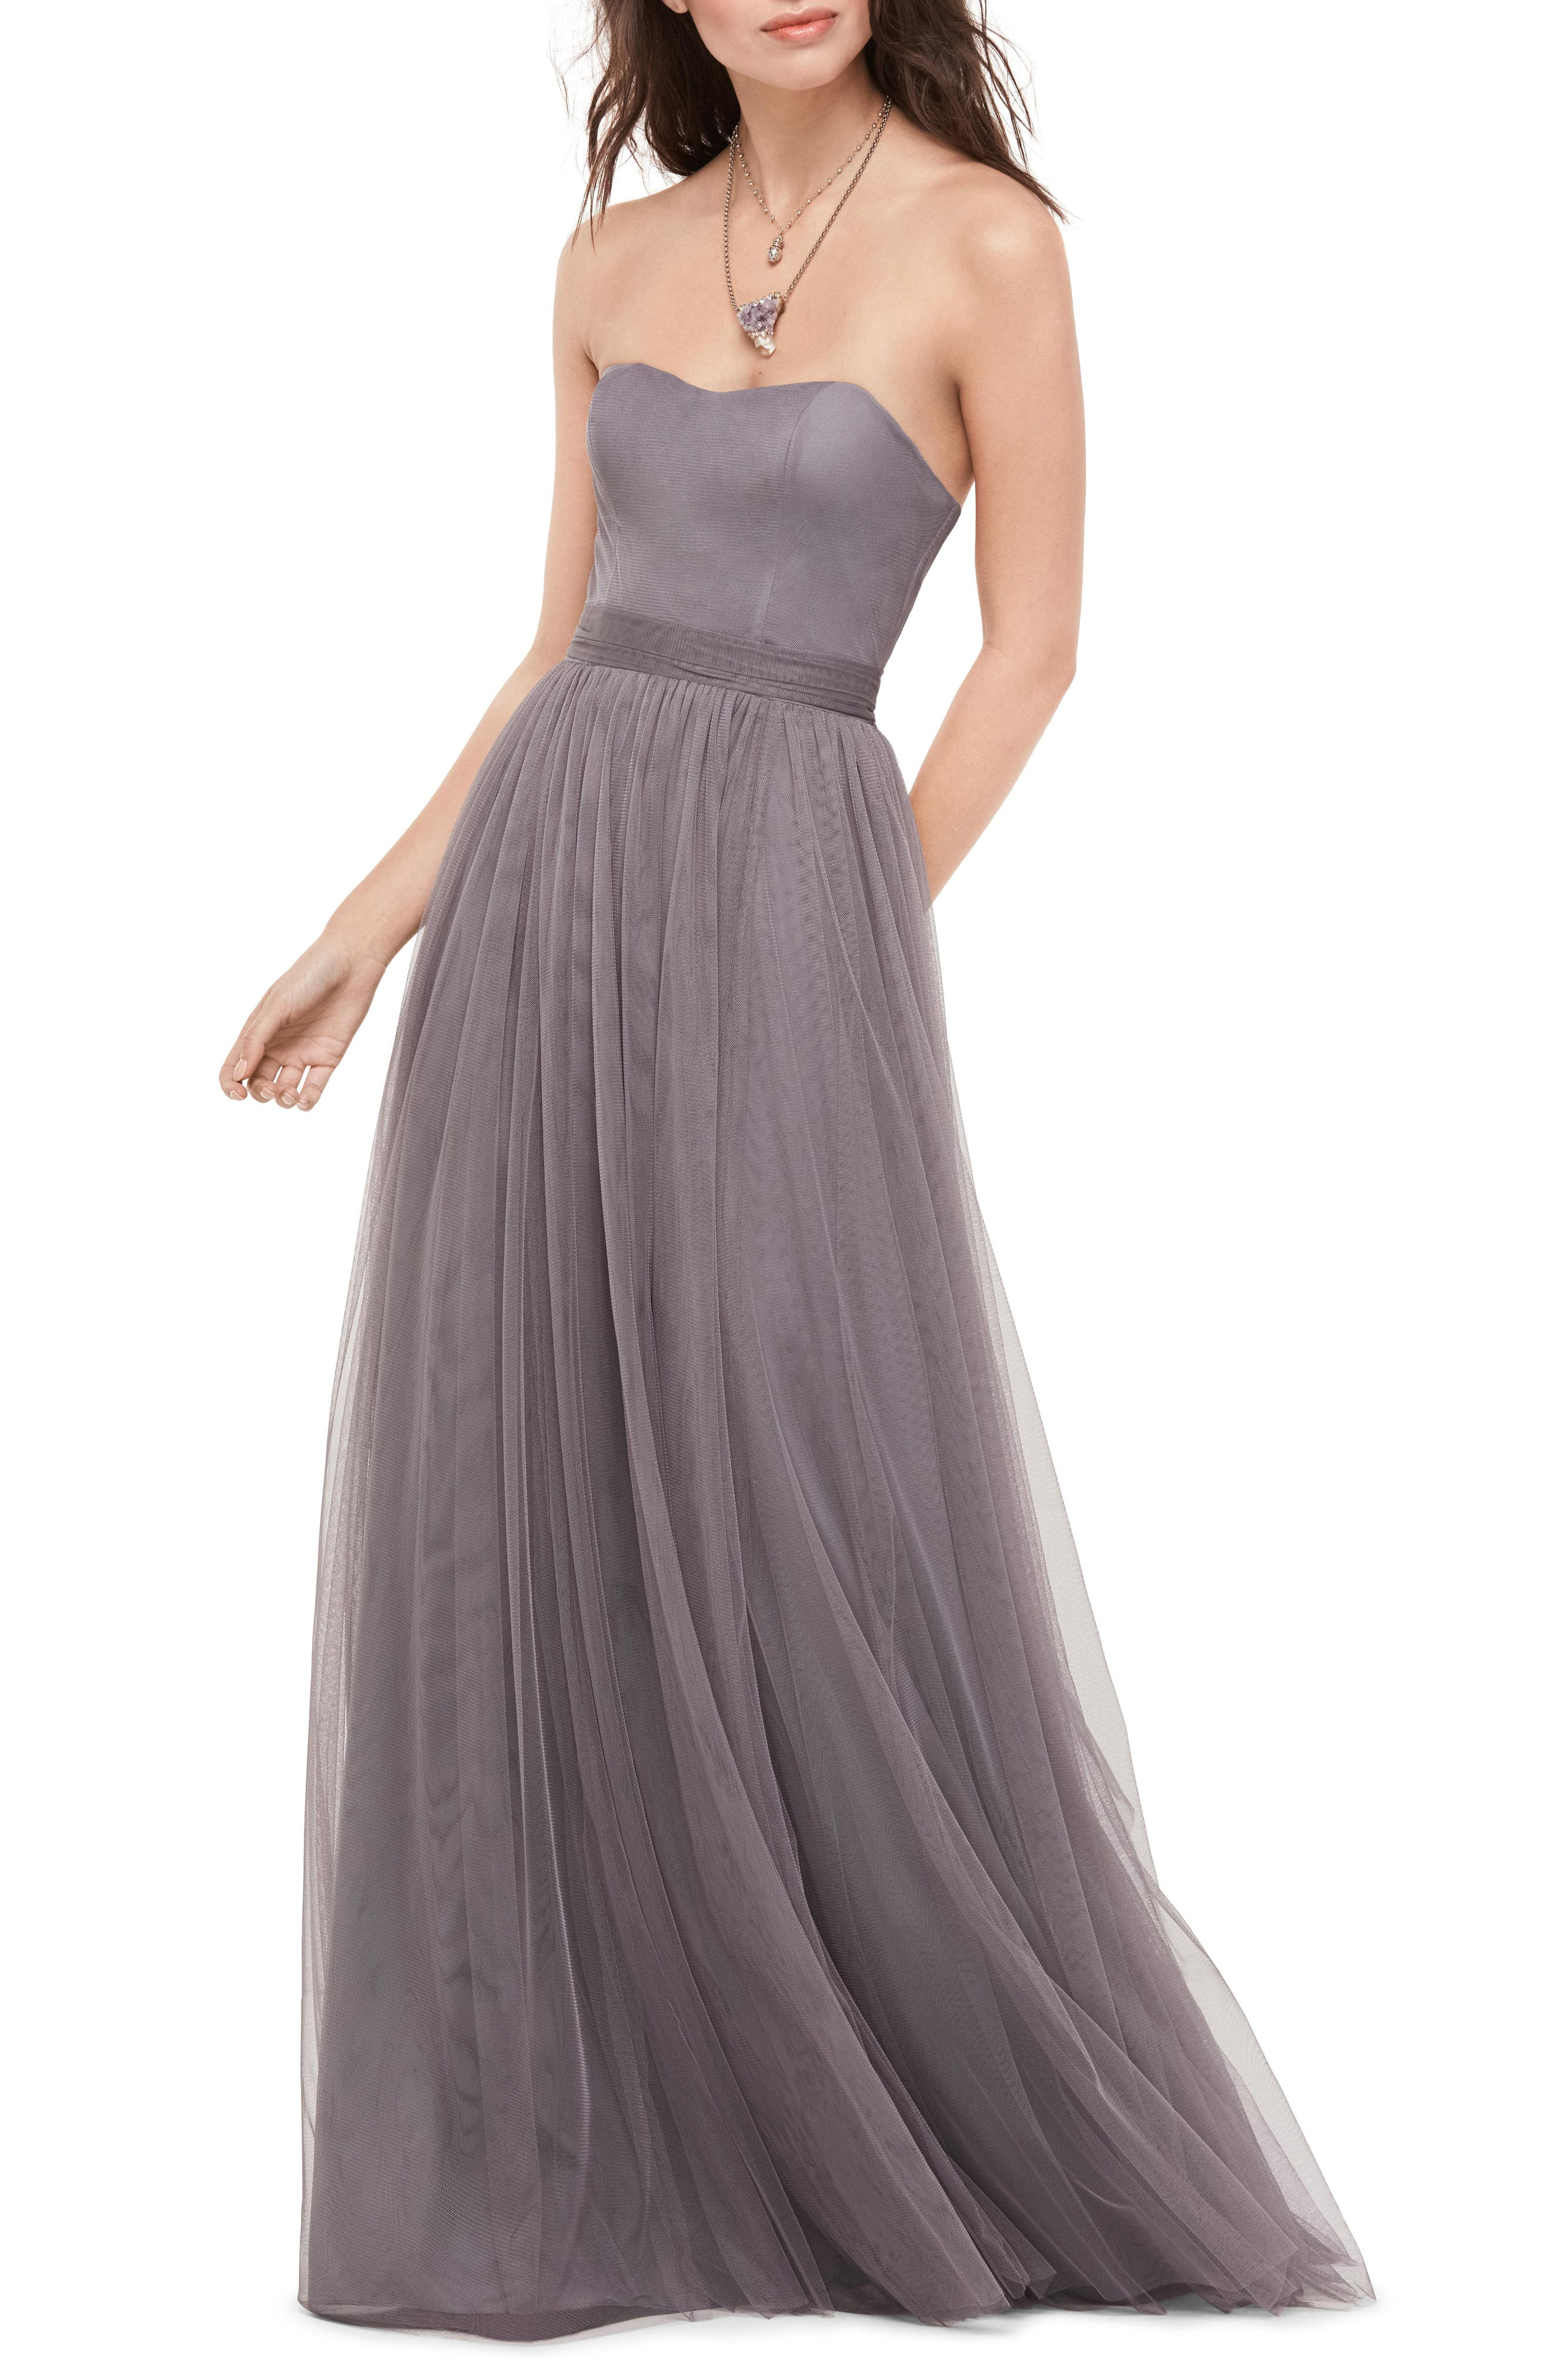 Bobbinet Strapless Gown,                             Main thumbnail 1, color,